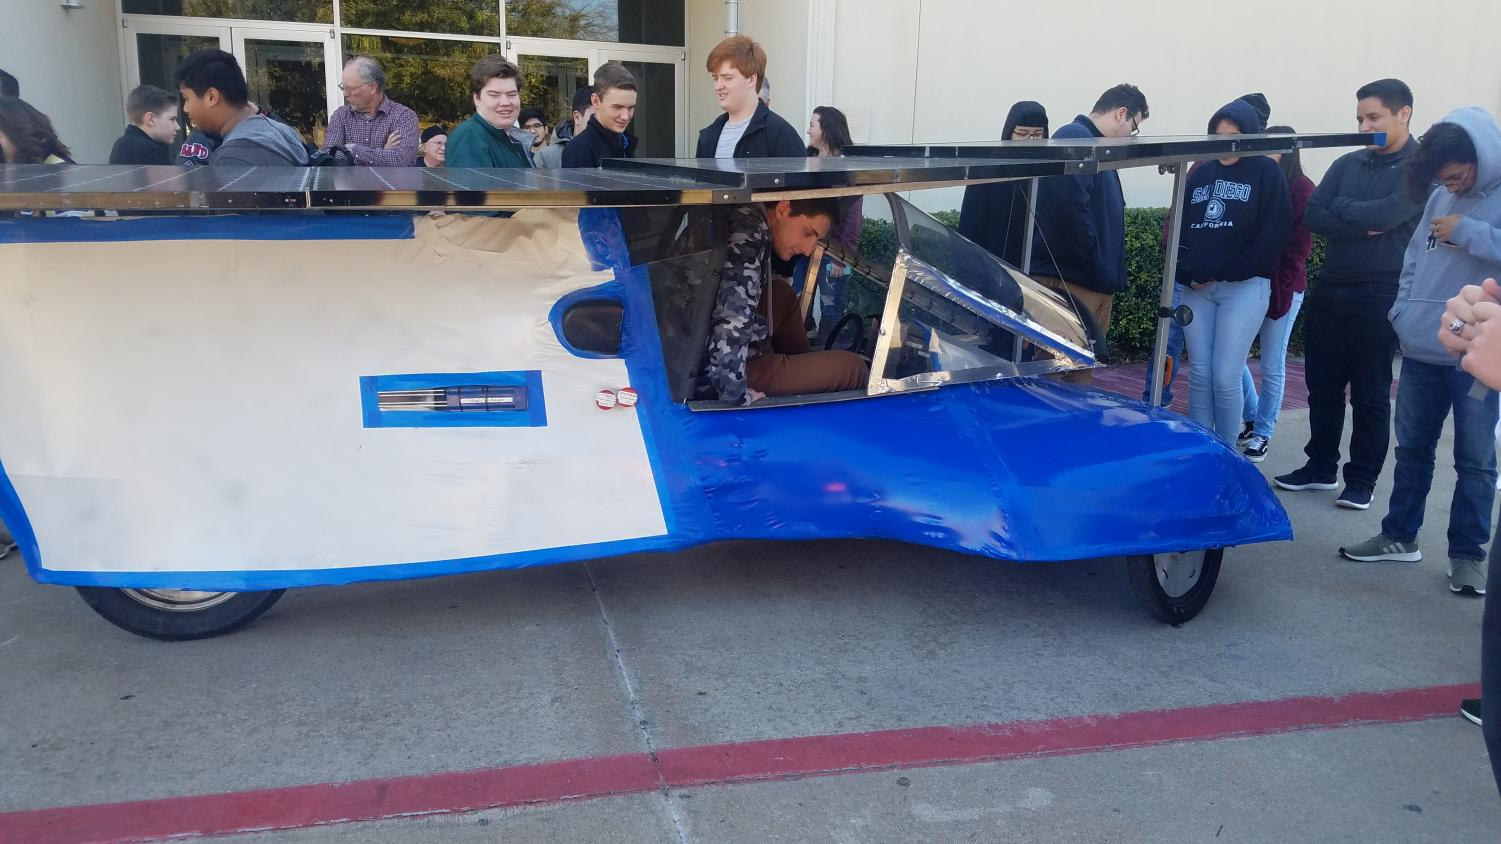 Showing off \\ While attending the annual specialty workshop Jan 13, the solar car team was able to show off last year's car to teams who will b participate in this year's Solar Car Challenge.